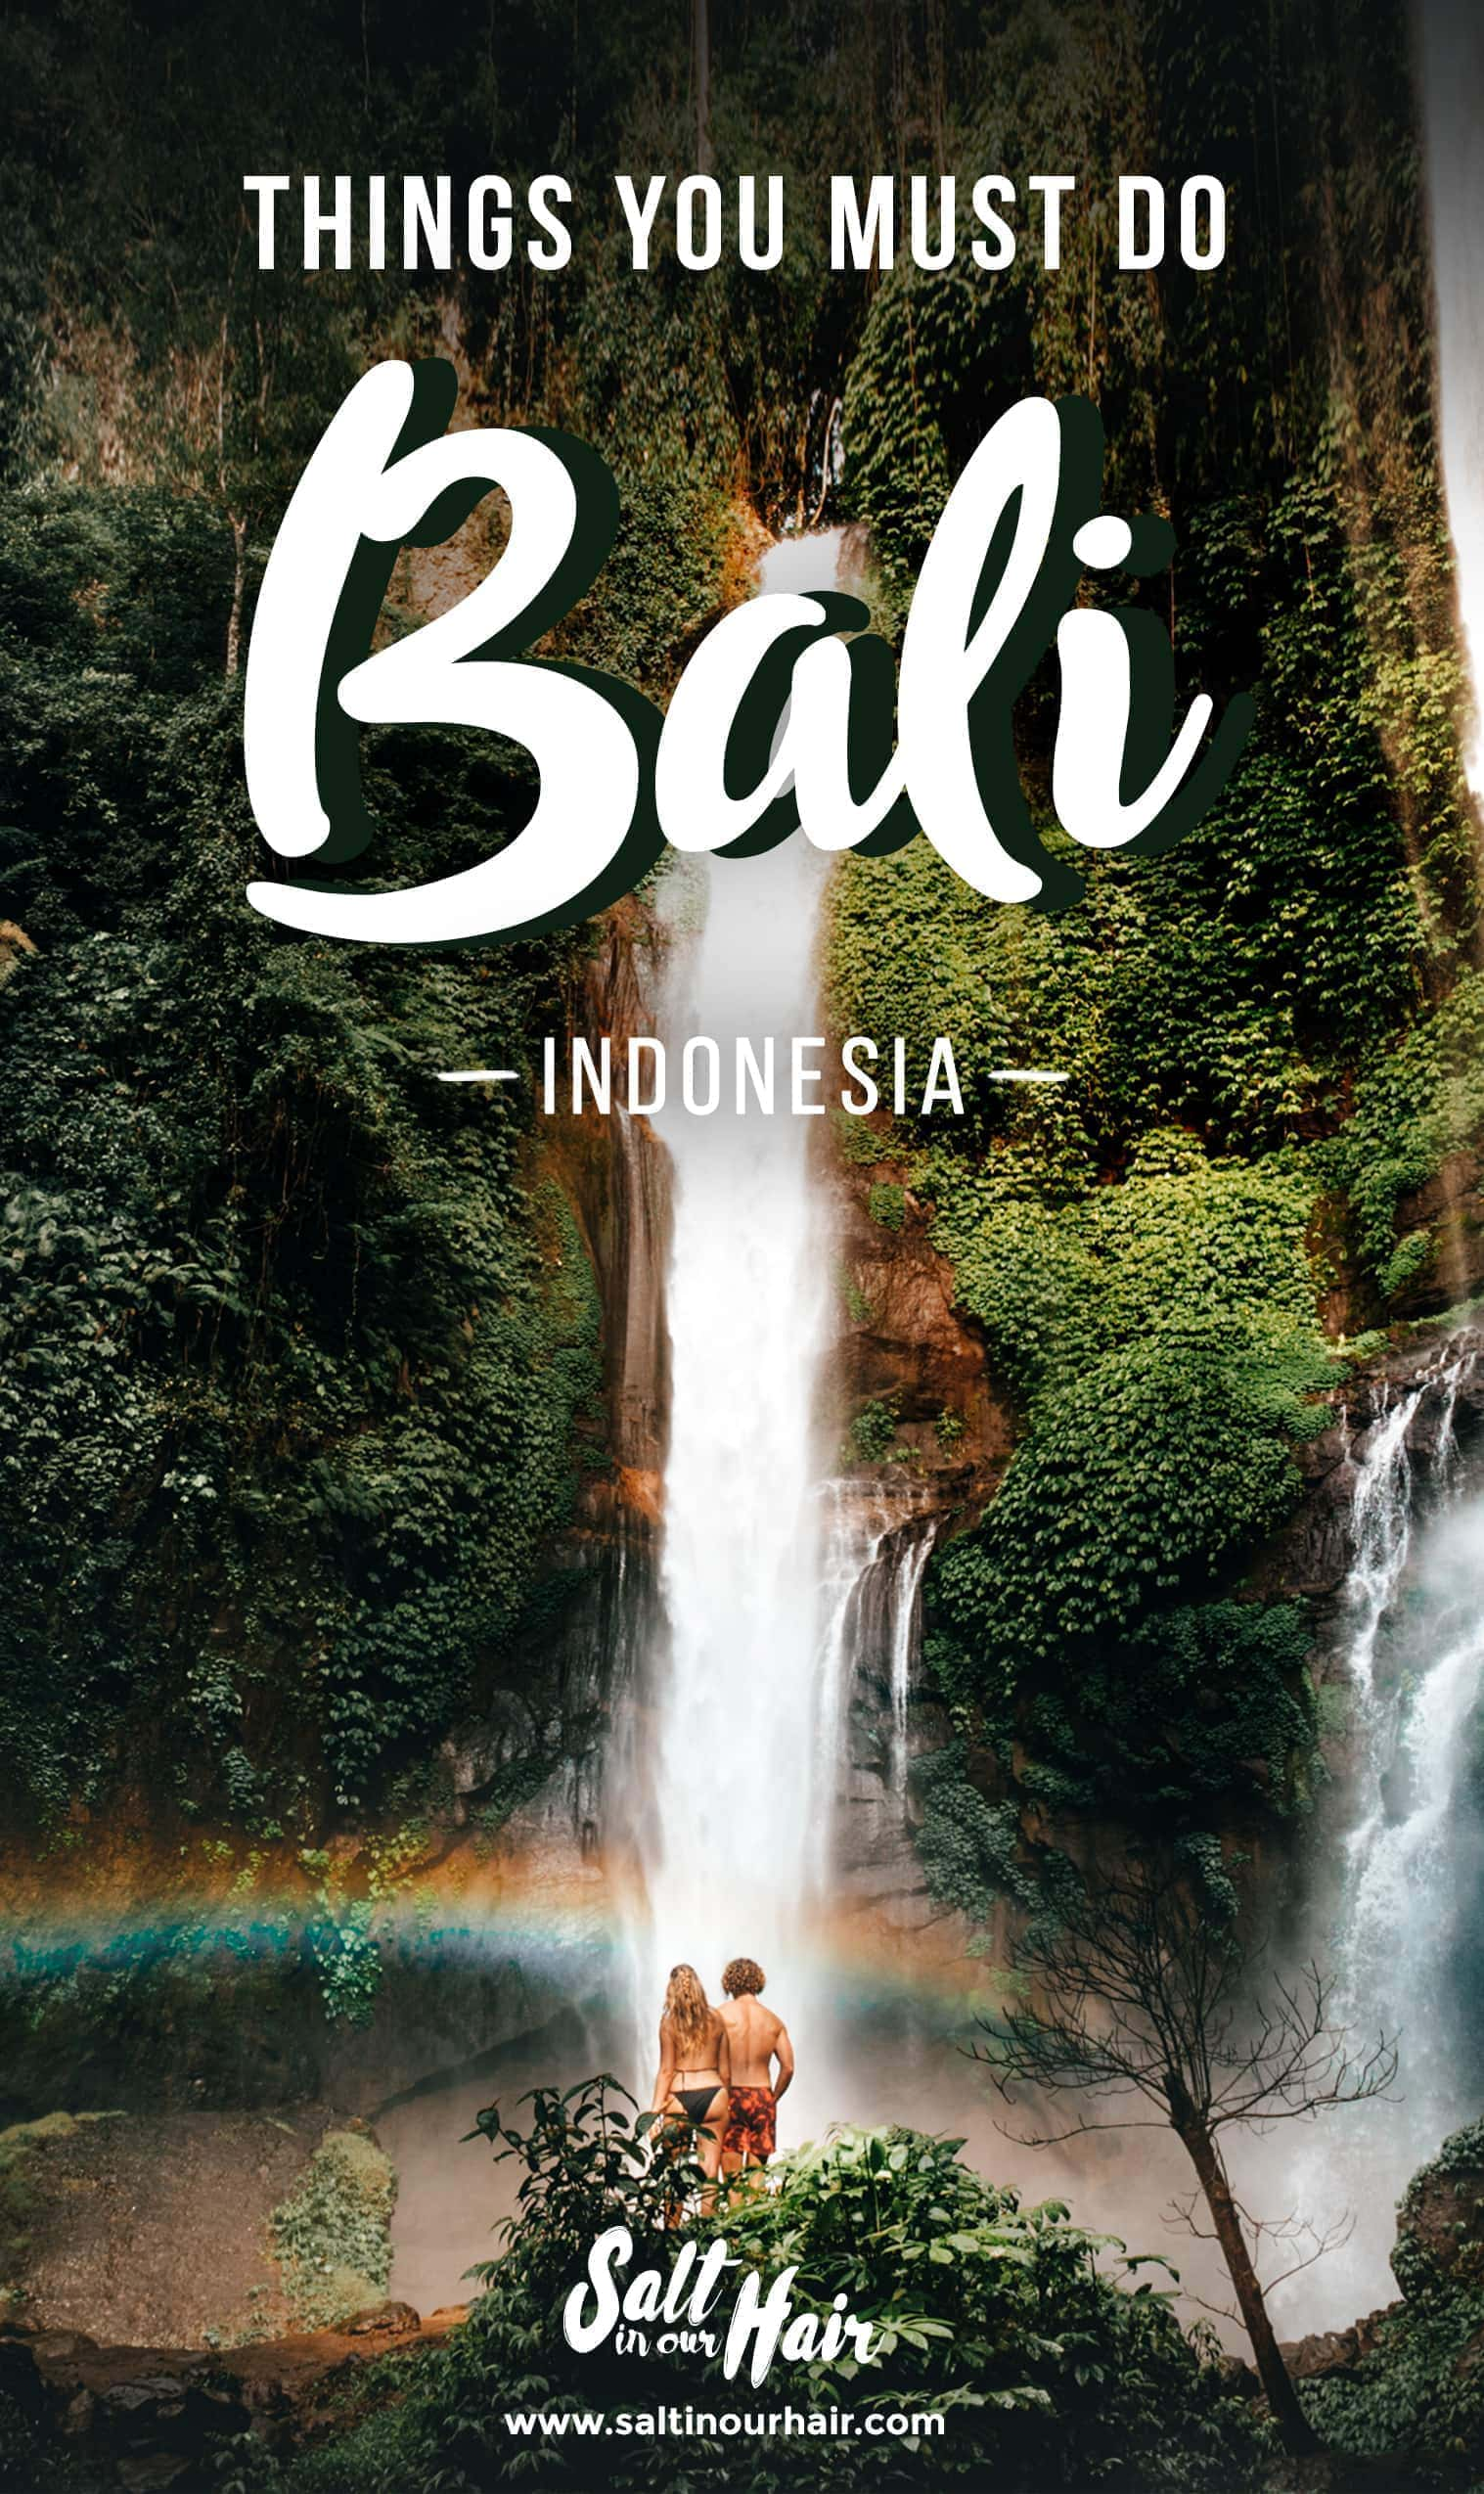 Must Do: 12 Things You MUST Do Bali, Indonesia